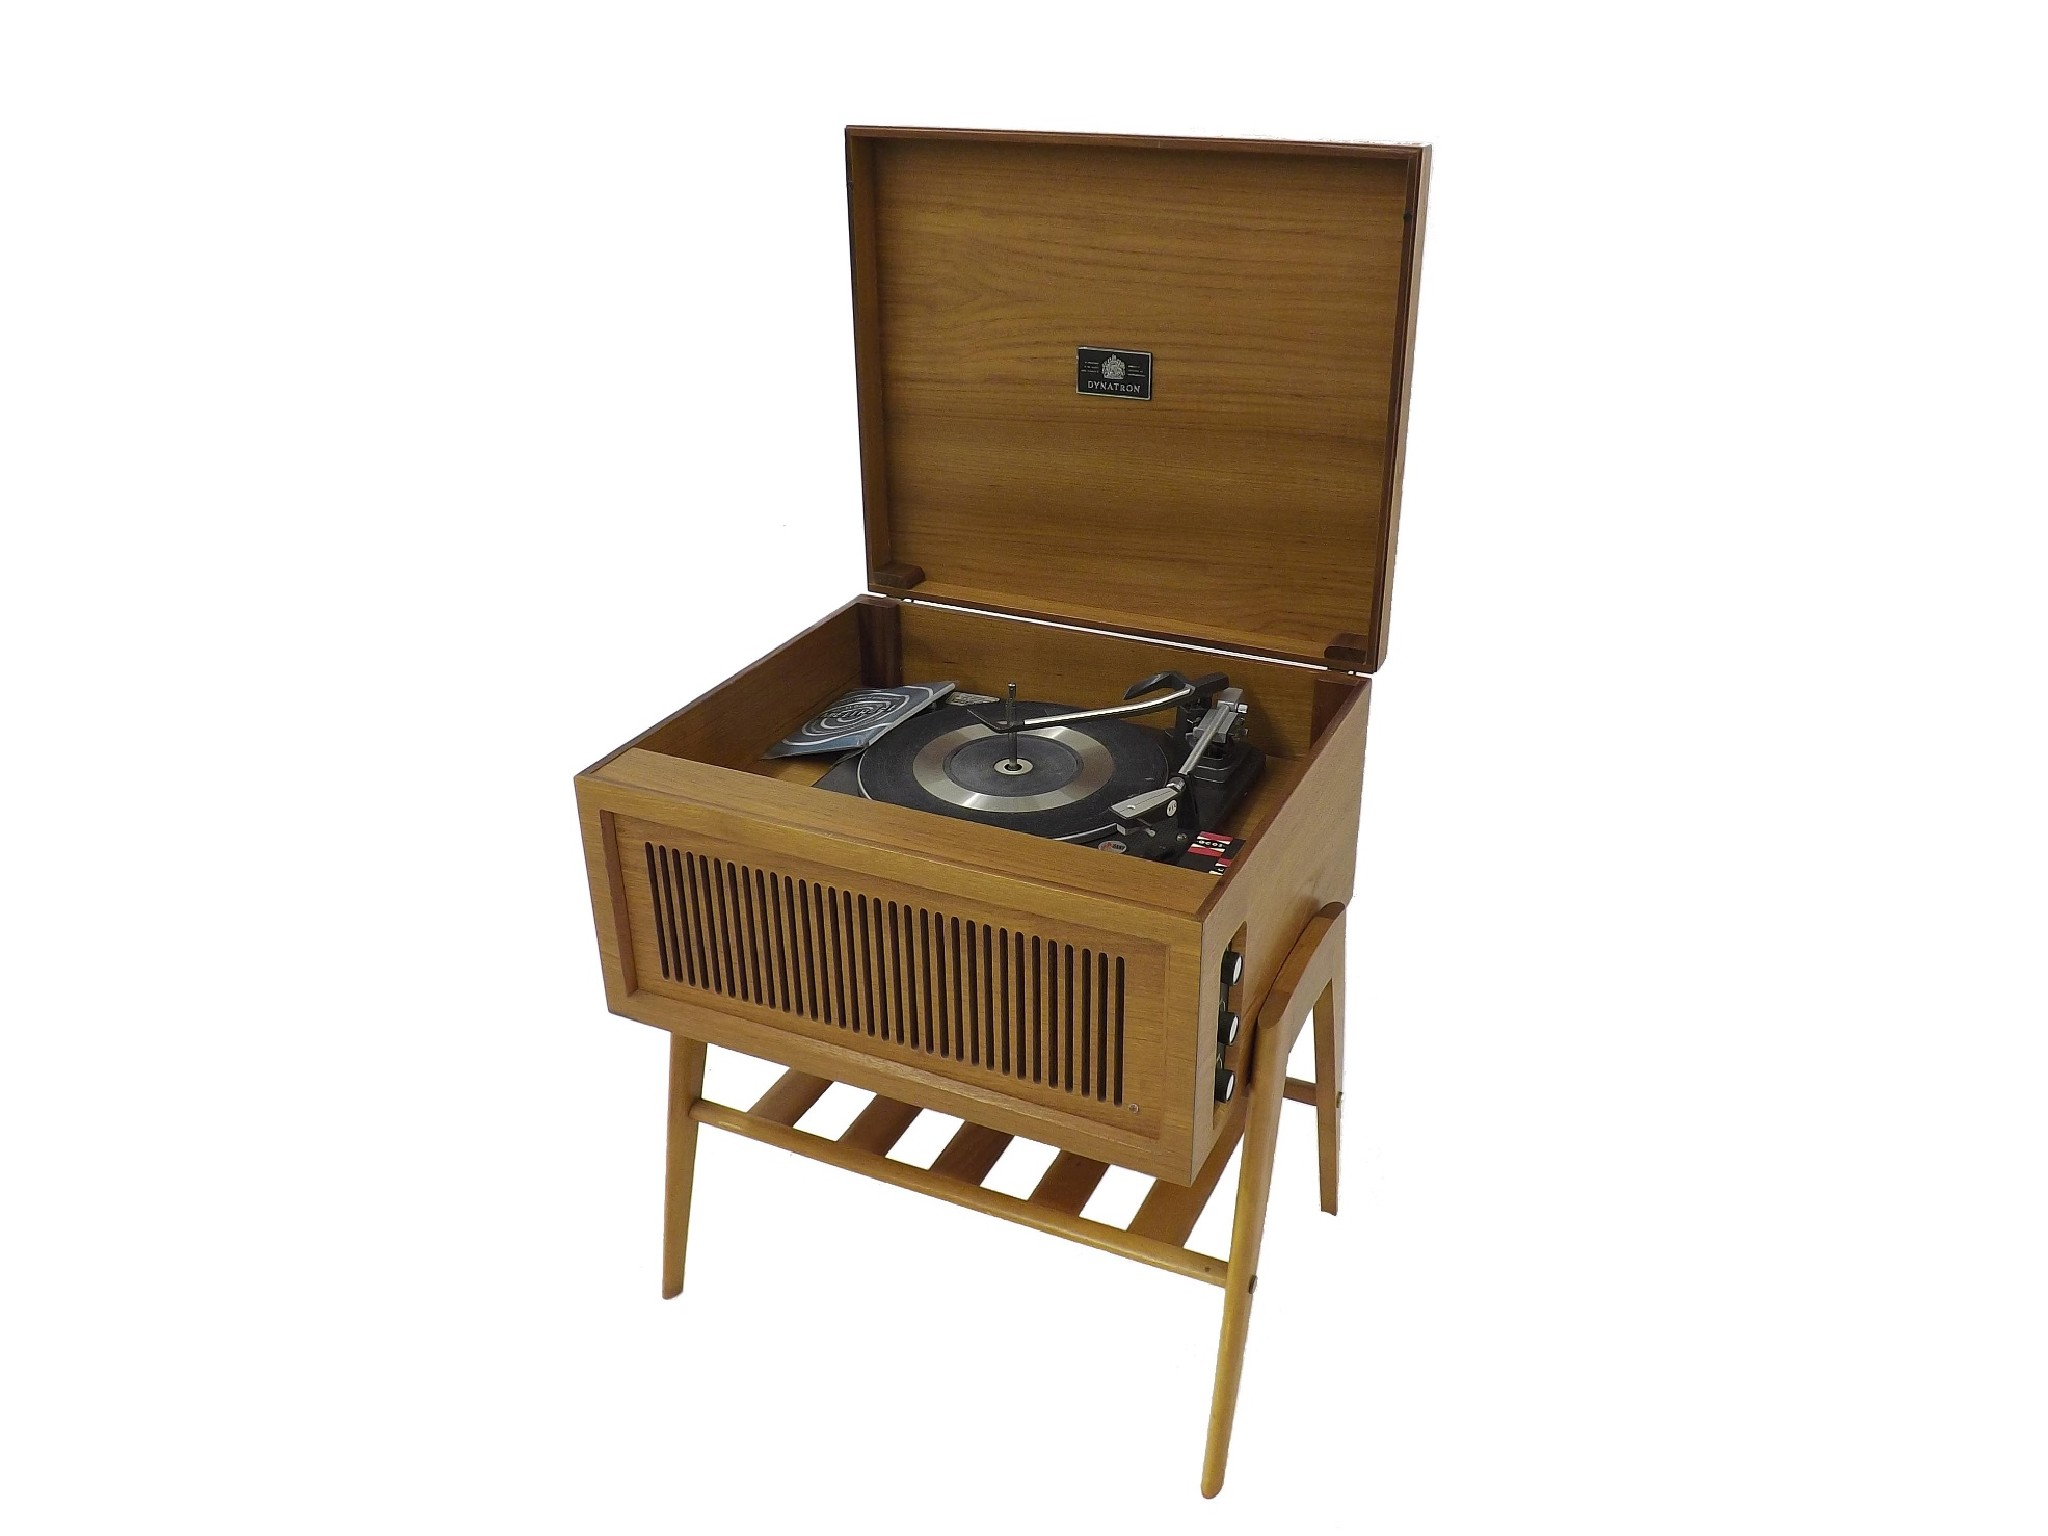 Turntable buying guide: how to choose the right vinyl record player.